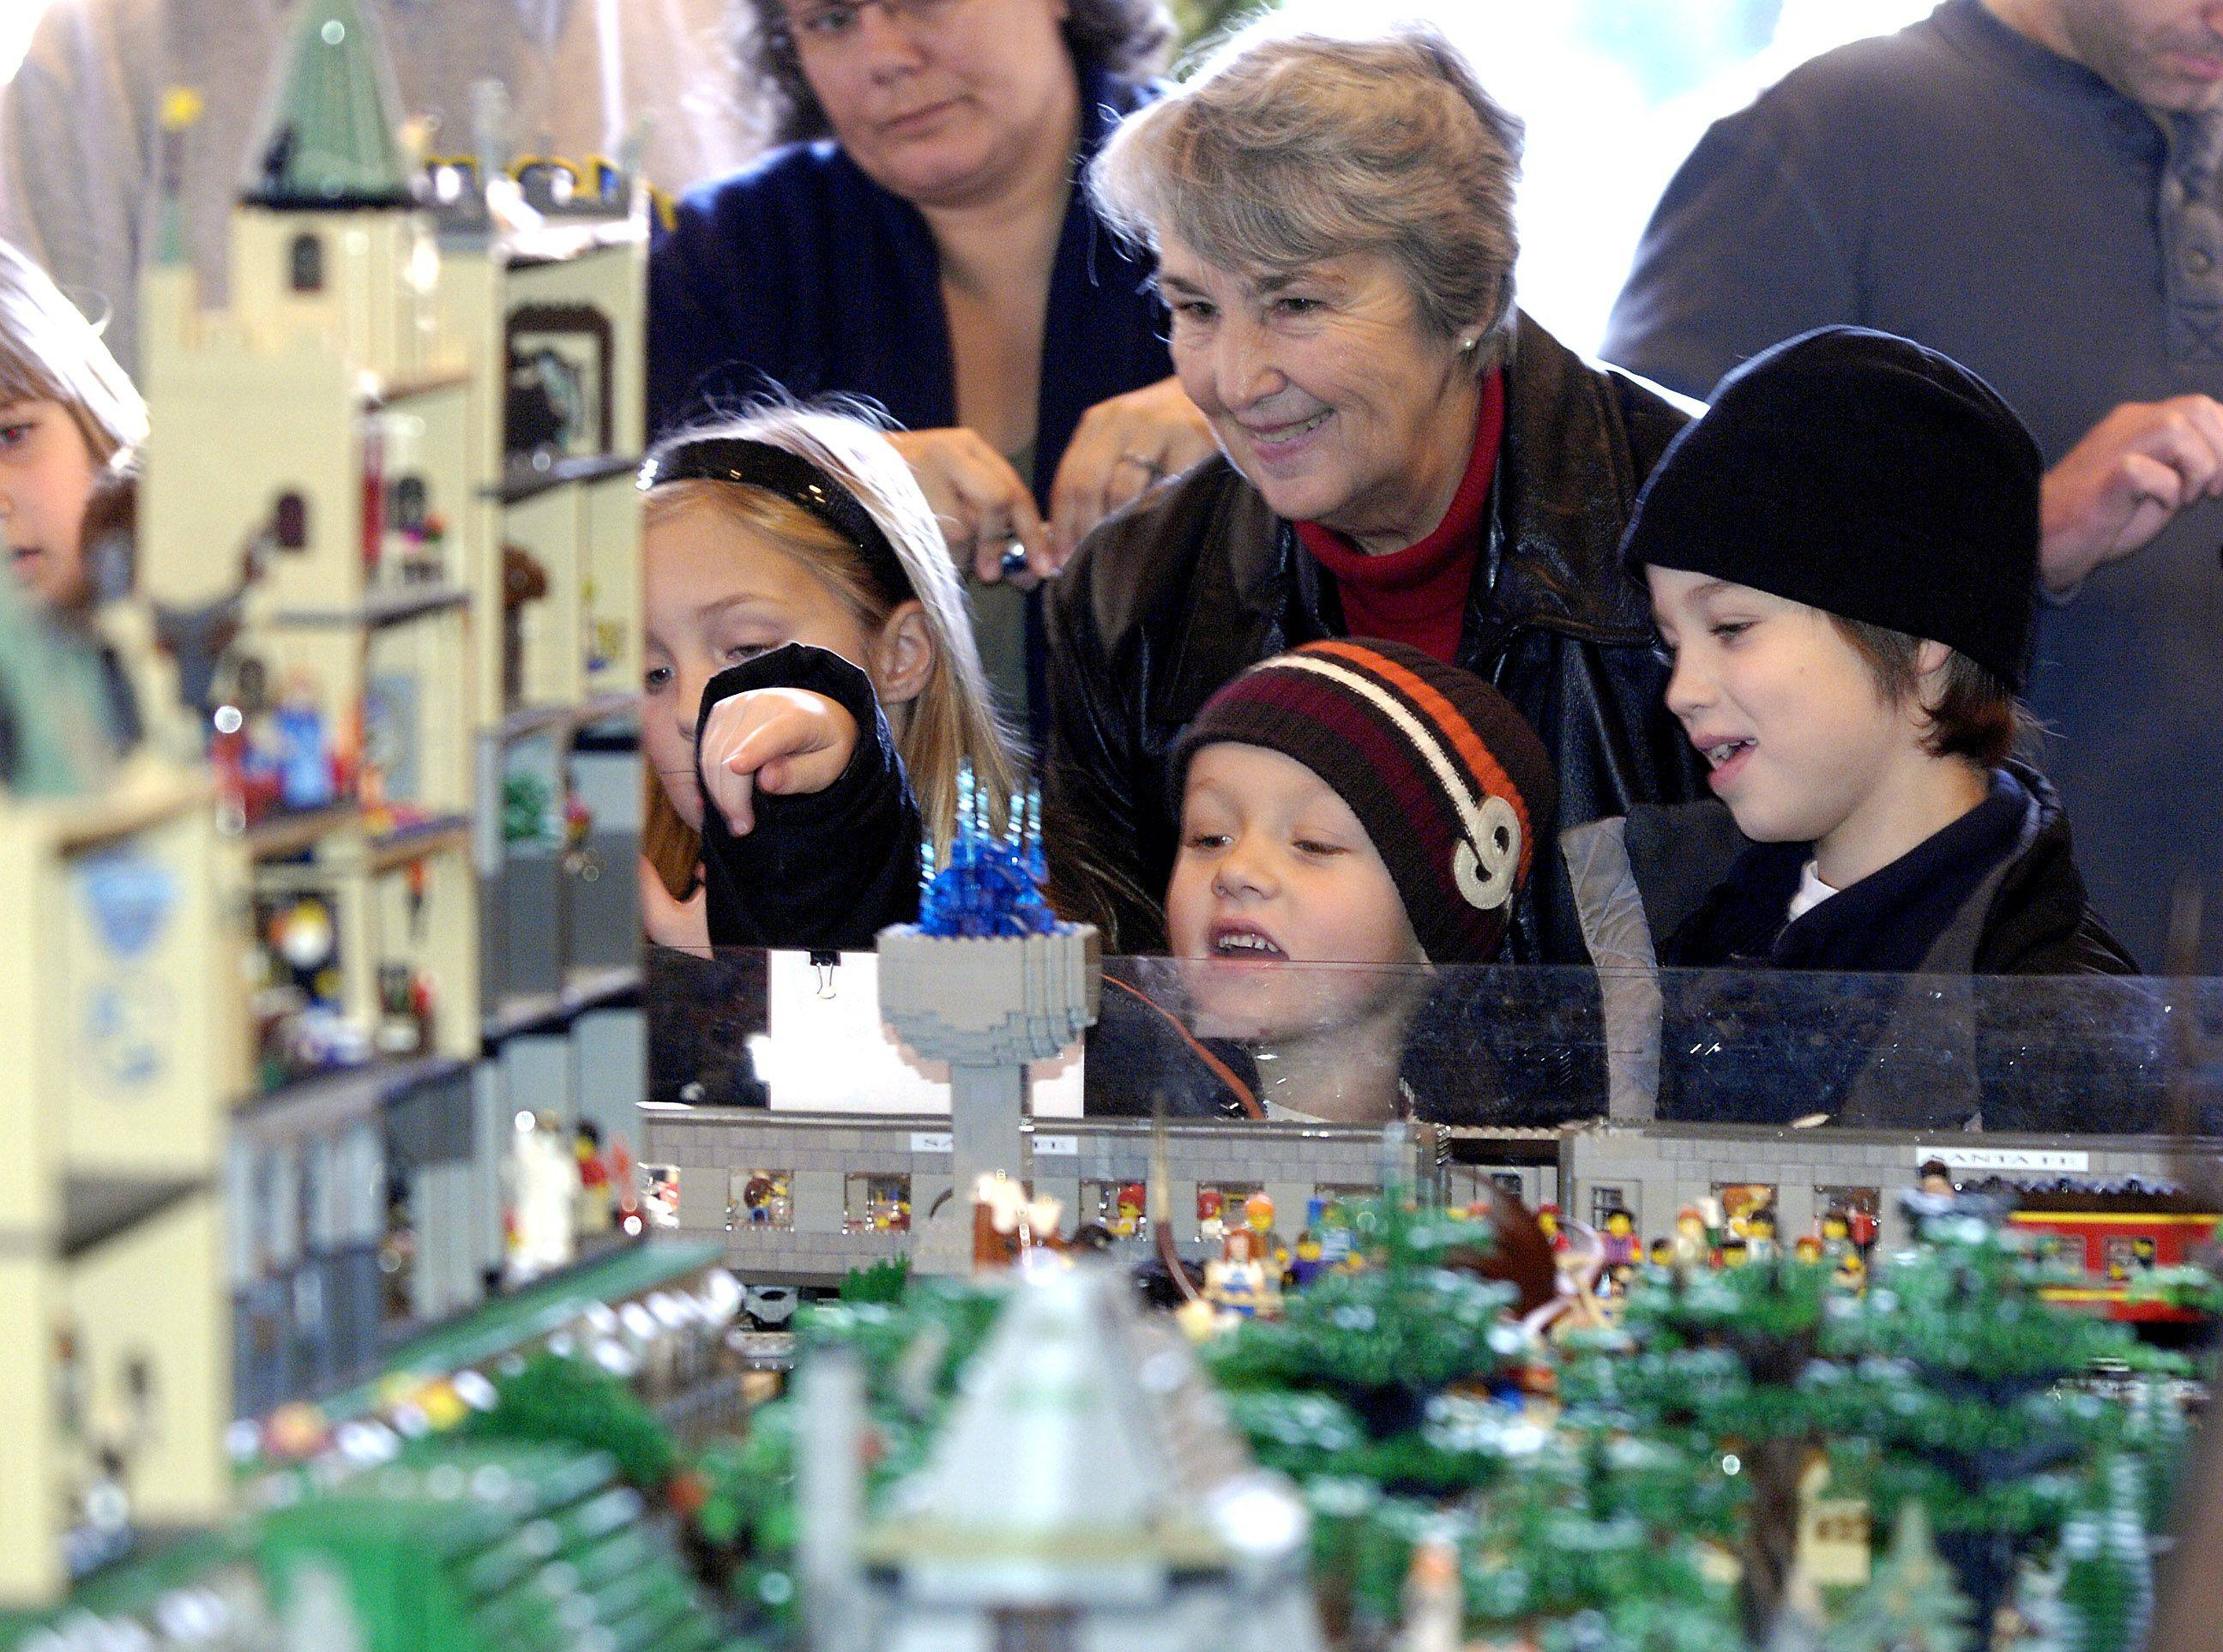 Jan Foster and her grandchildren Payton, 10, Troy, 6, and Colin Foster, 8, check out one of the many train layouts Sunday at the Lego Train Show at Cantigny Park in Wheaton.